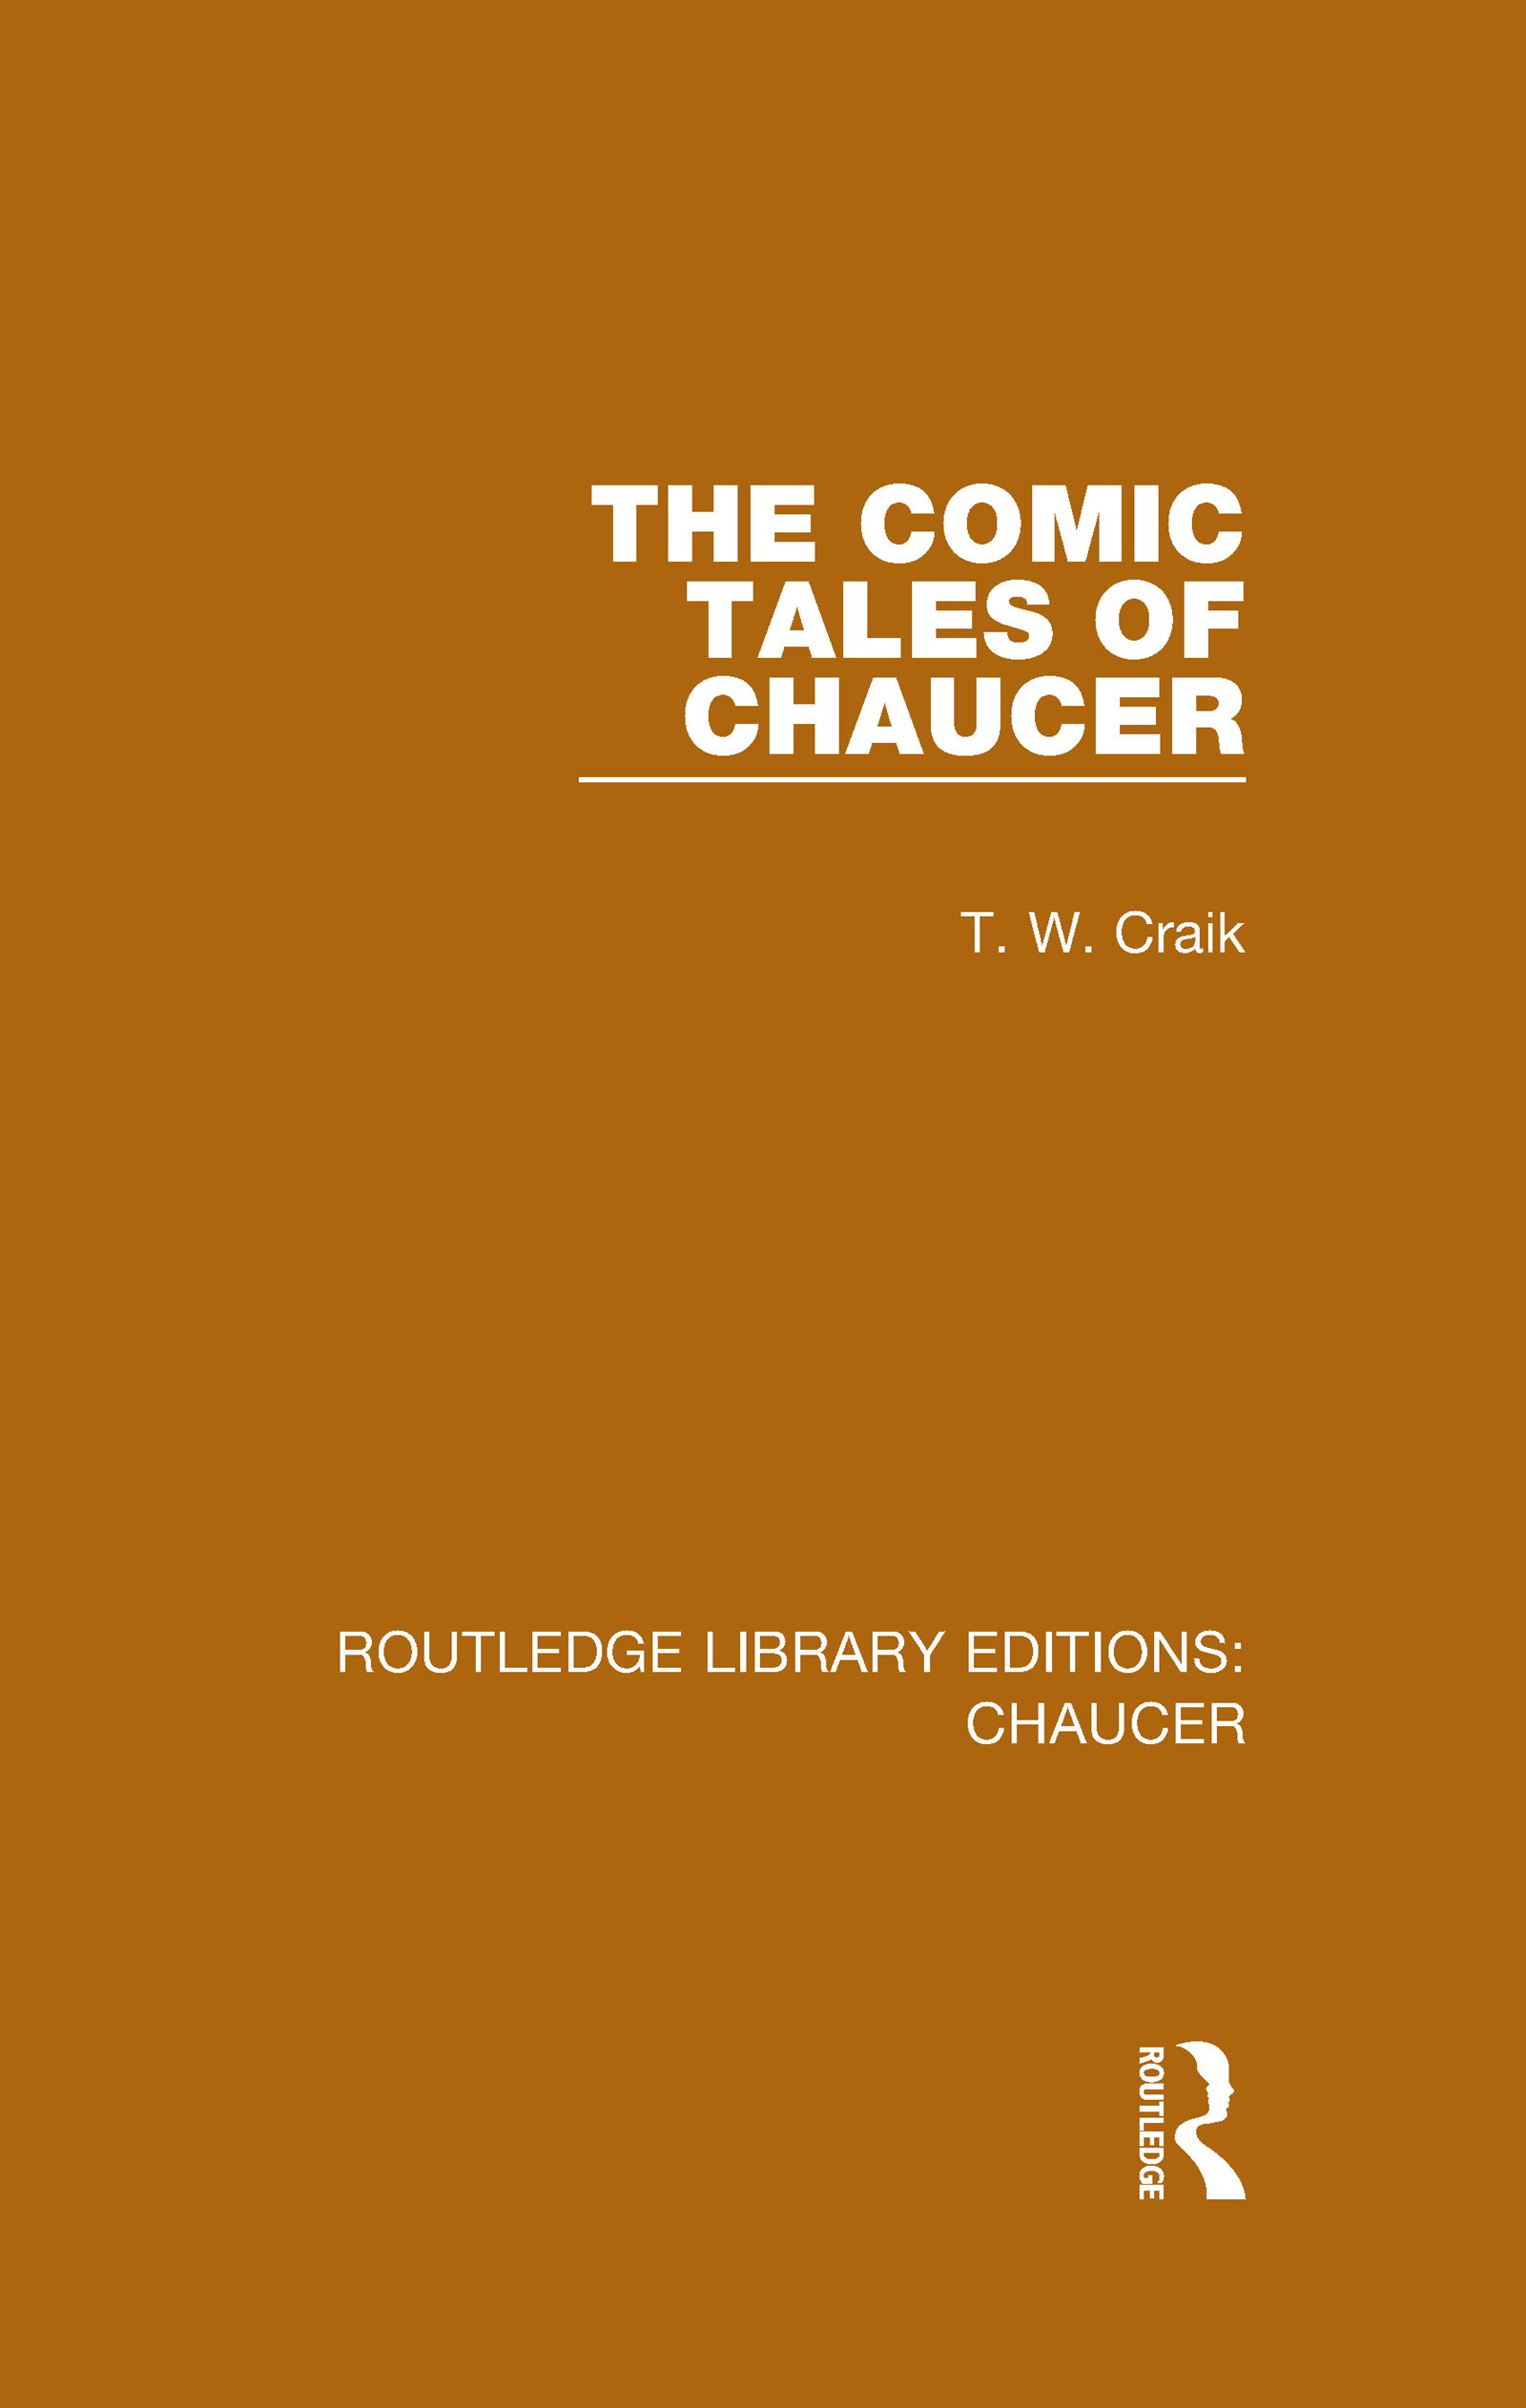 The Comic Tales of Chaucer